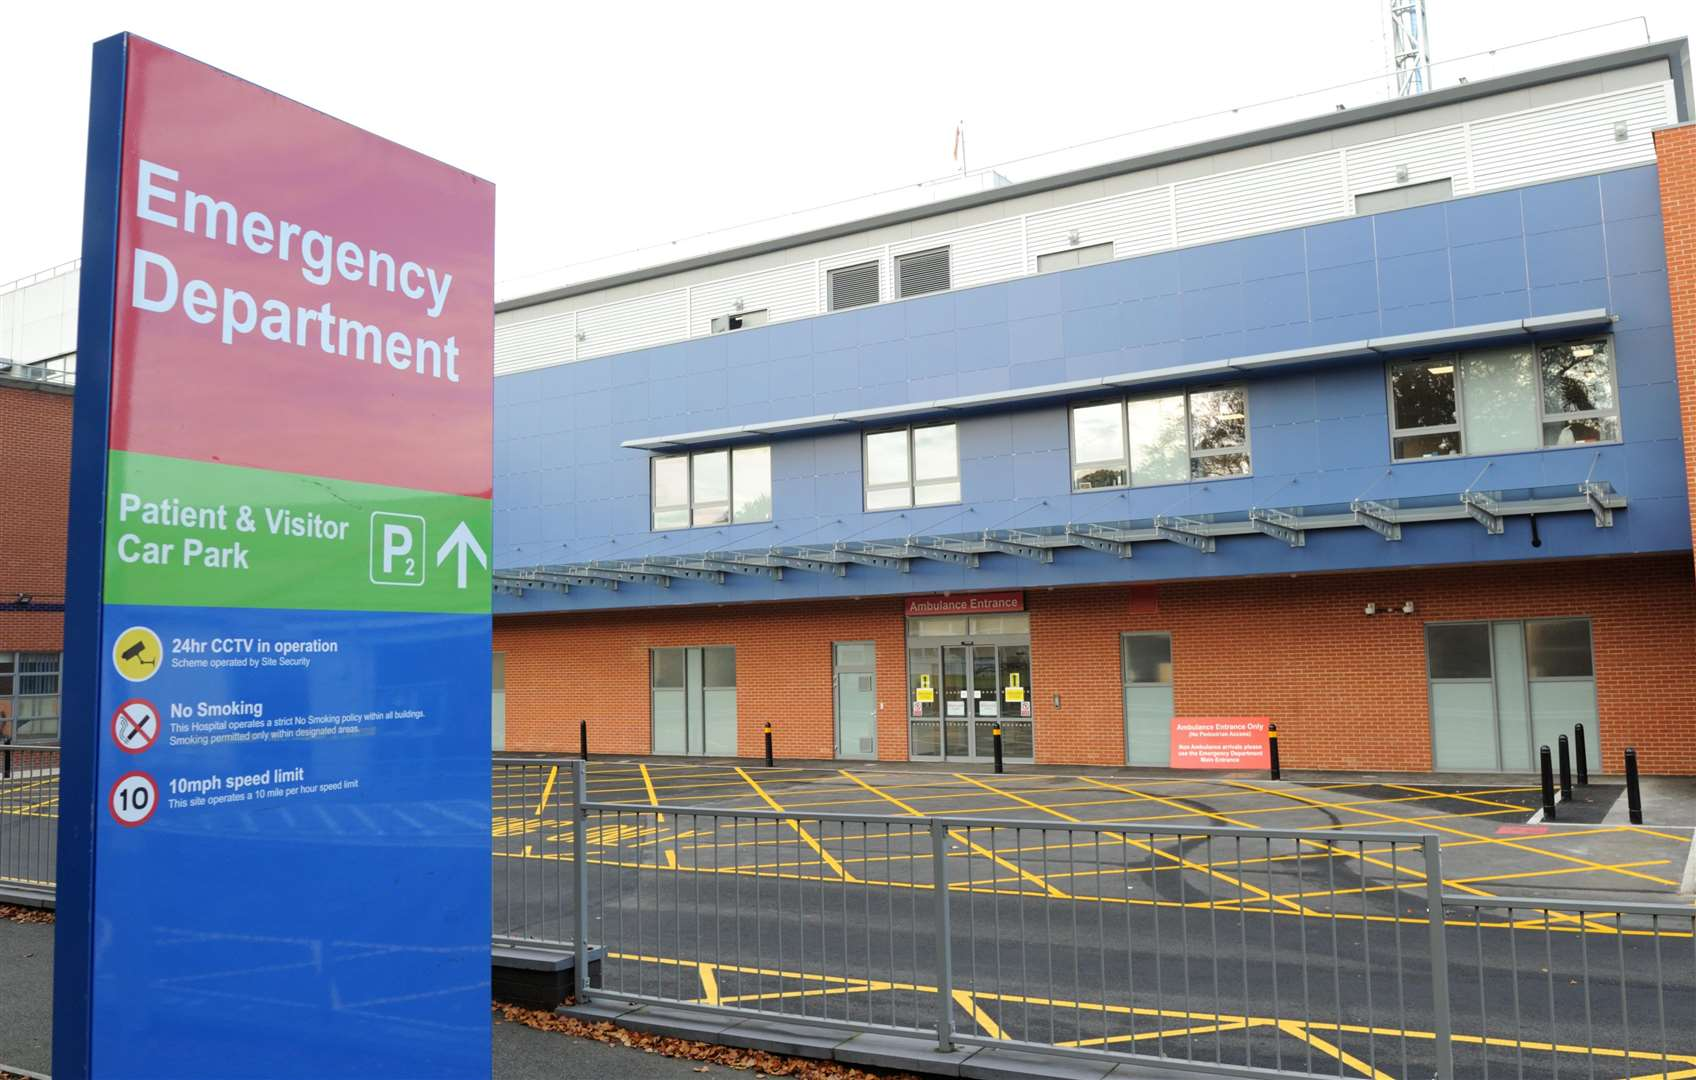 The hospital's new emergency department opens this morning